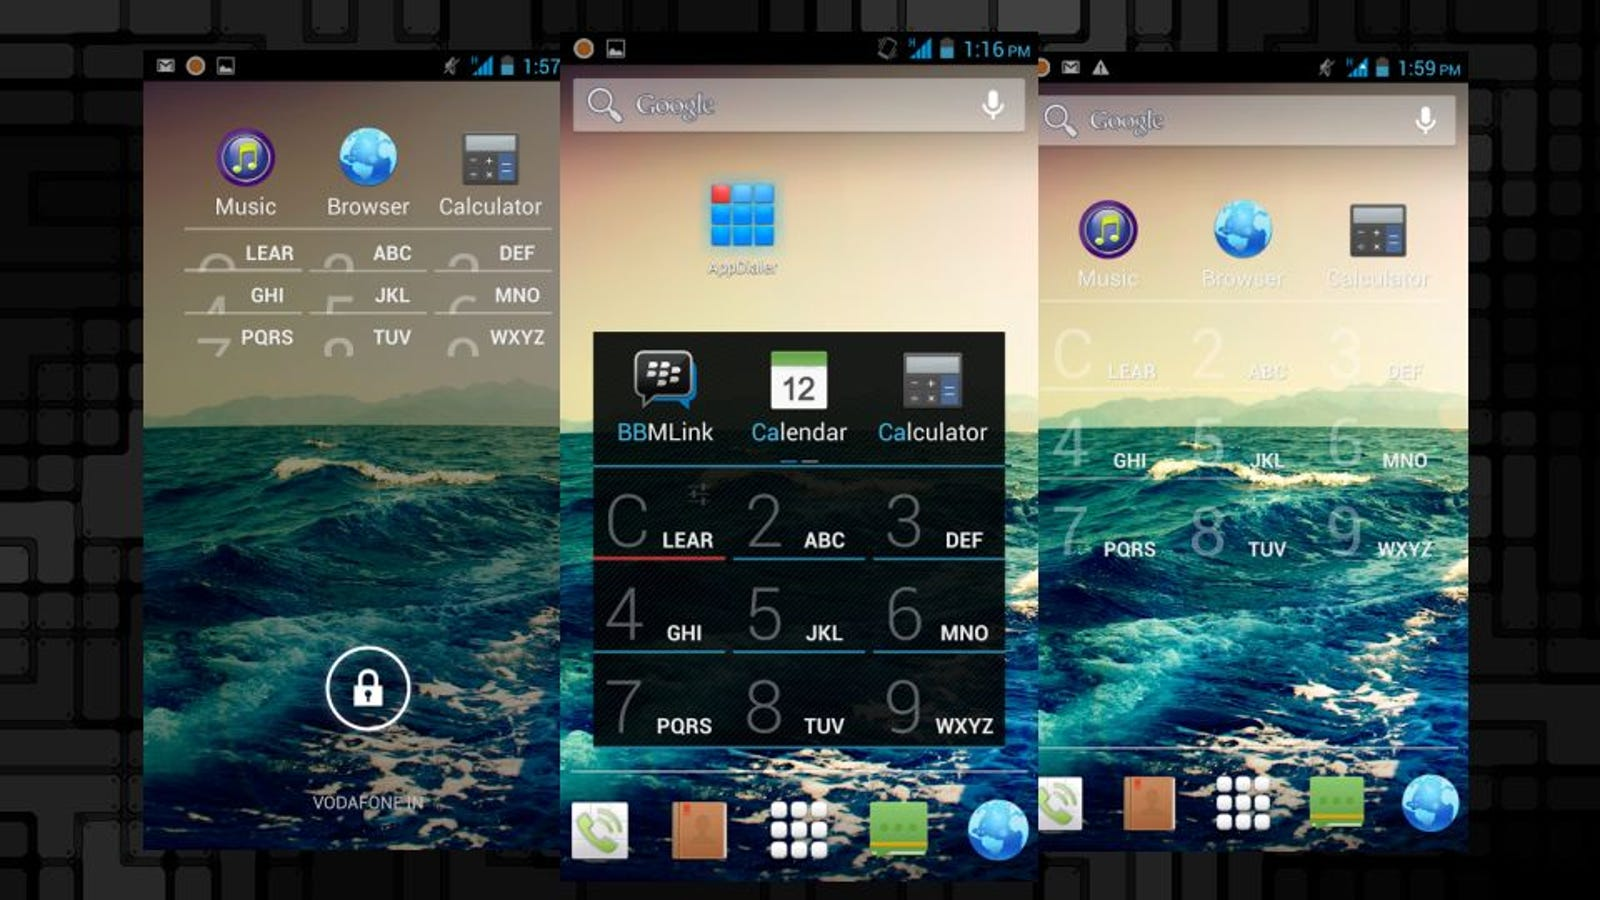 appdialer is a quick and easy t9 style app launcher for android. Black Bedroom Furniture Sets. Home Design Ideas